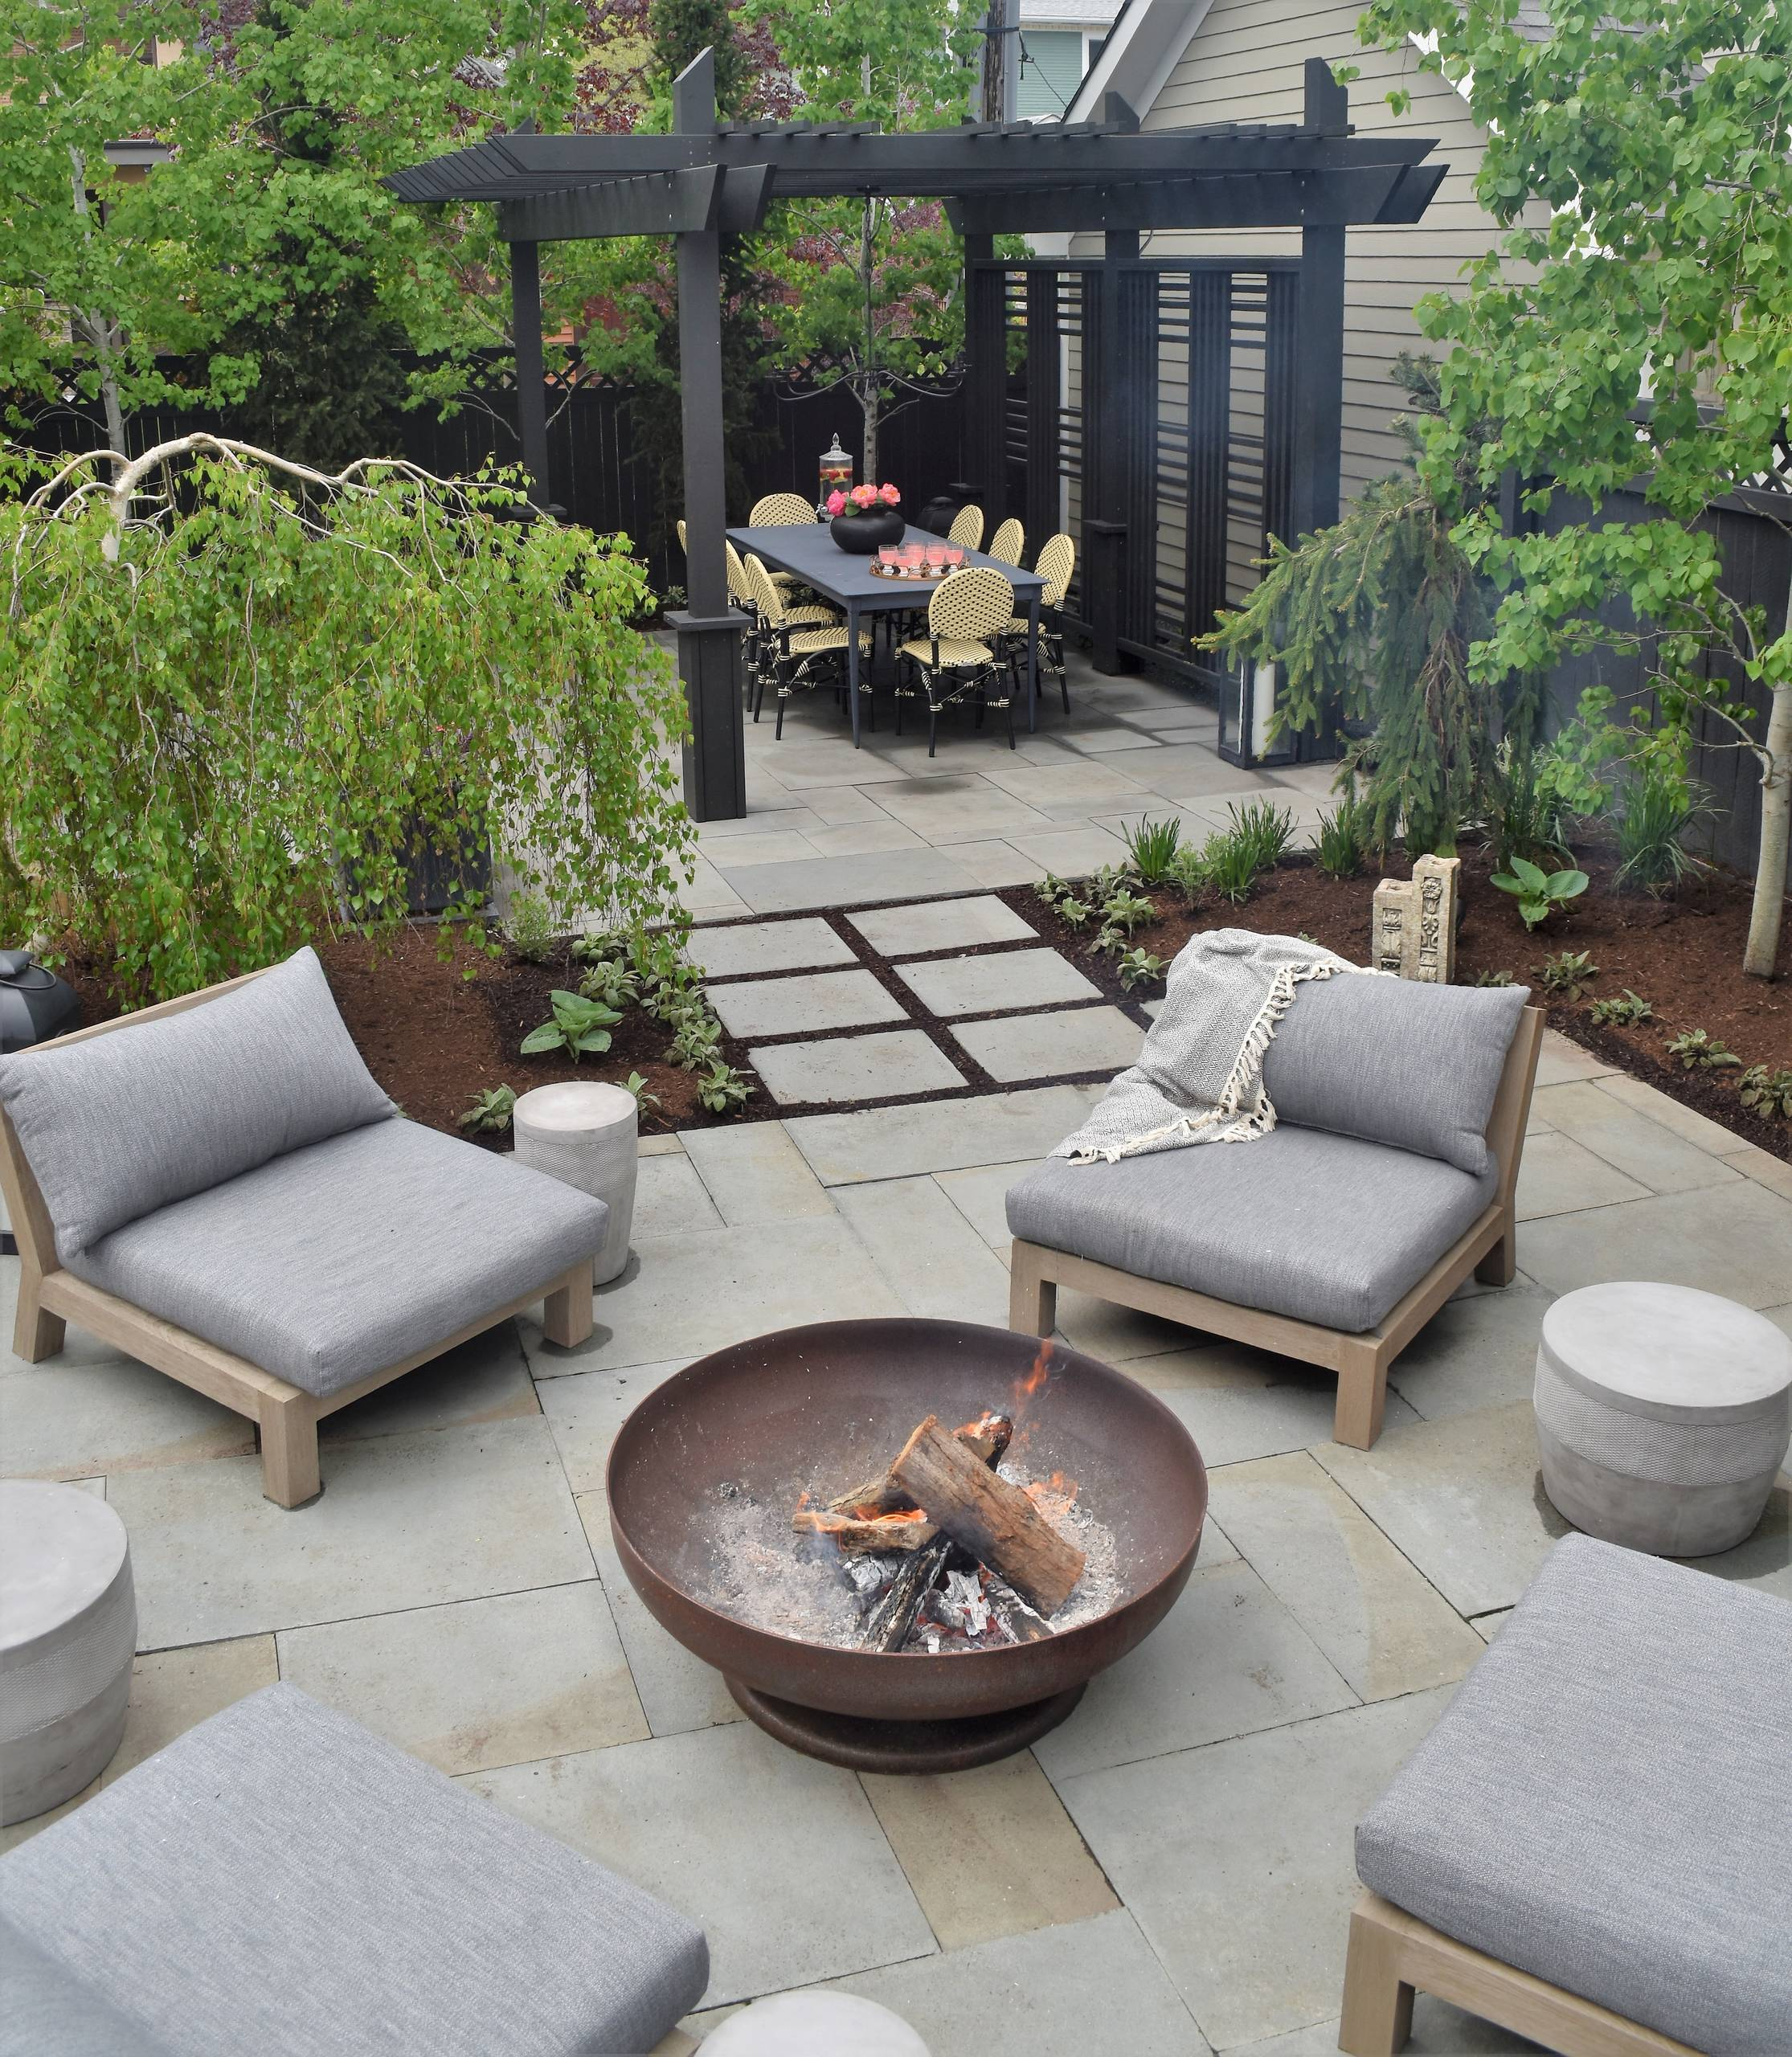 75 Beautiful Patio Pictures Ideas May 2021 Houzz